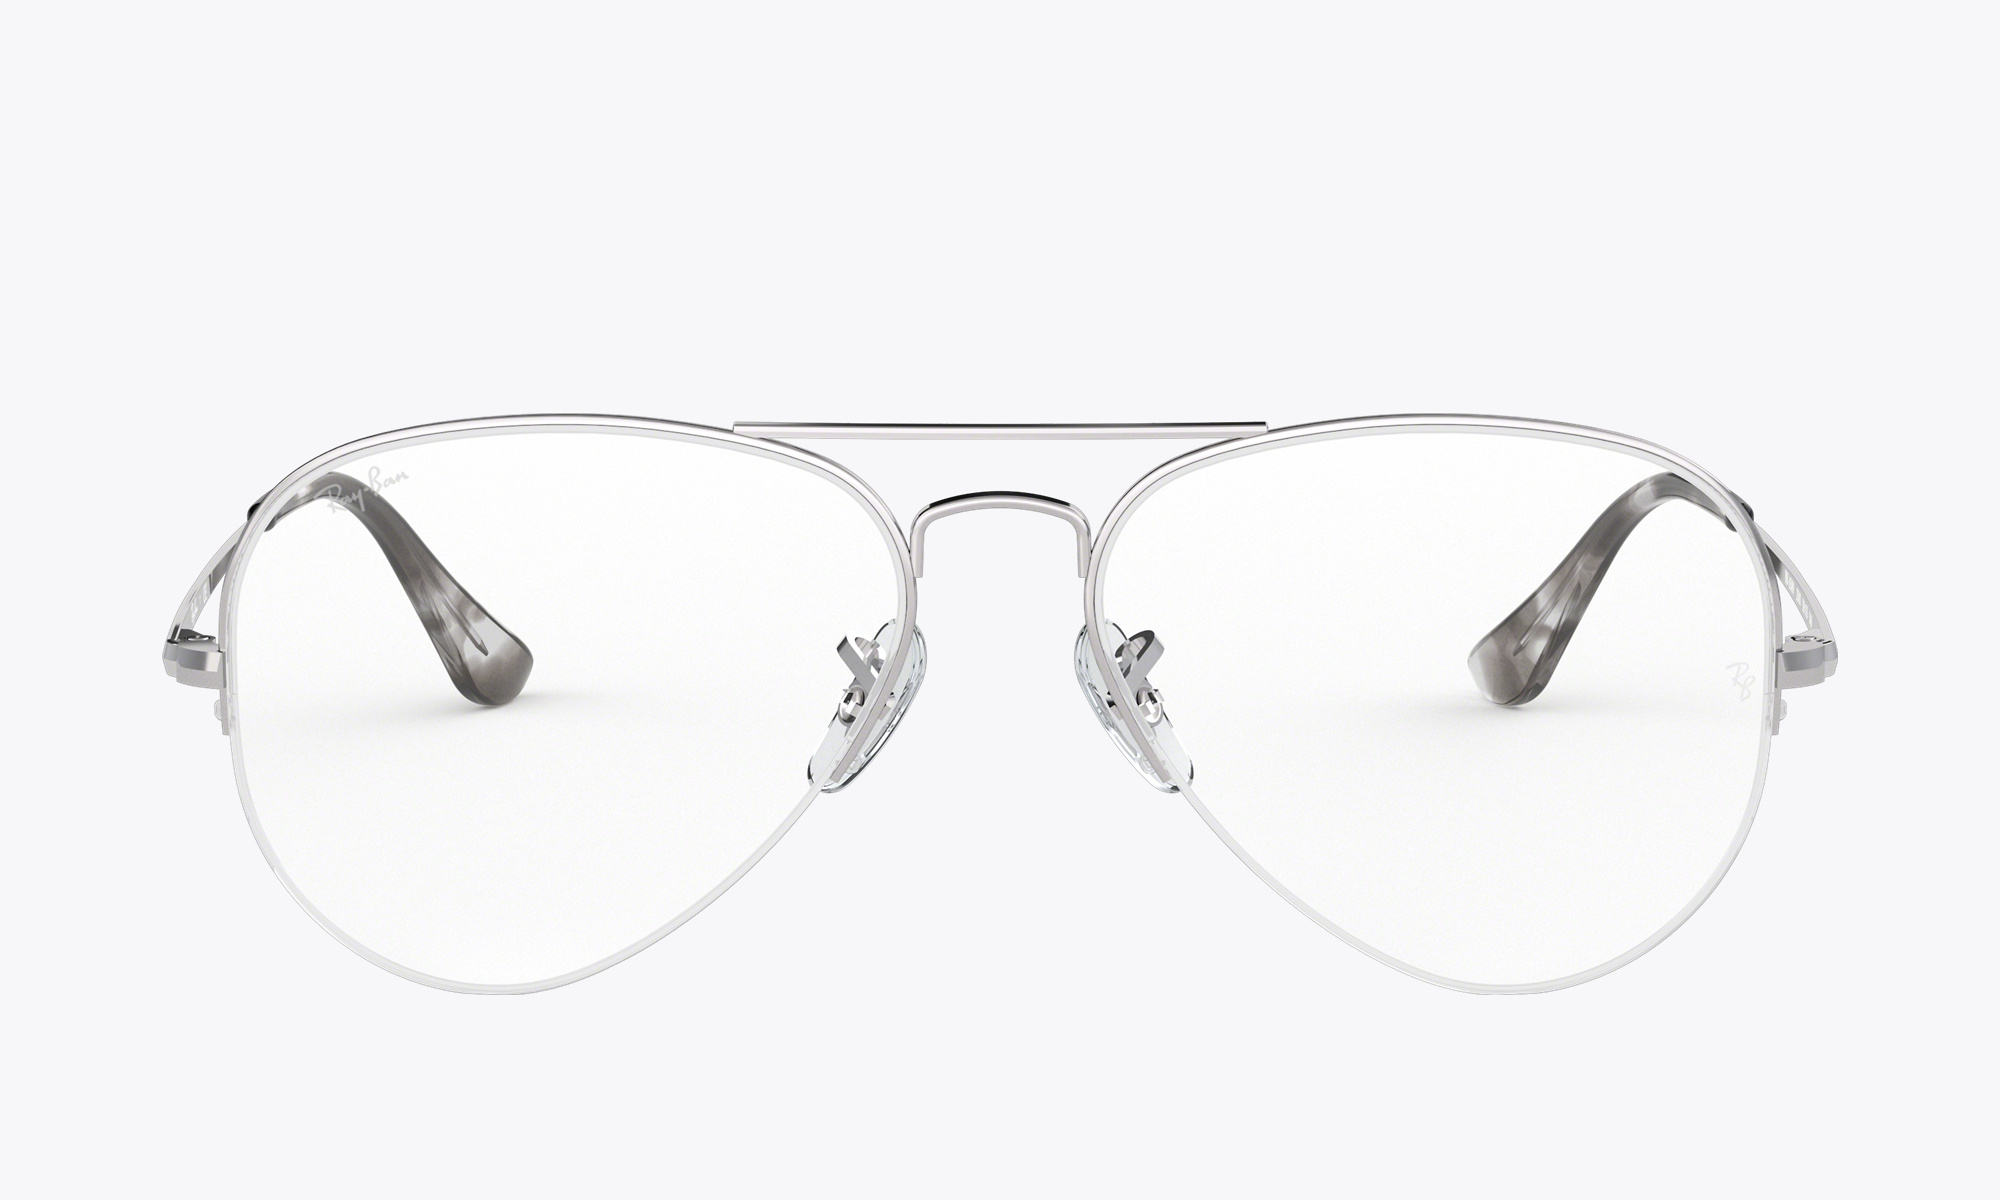 Details about Eyeglasses frames ray ban rx6589 Silver Metal Aviator 2501 show original title